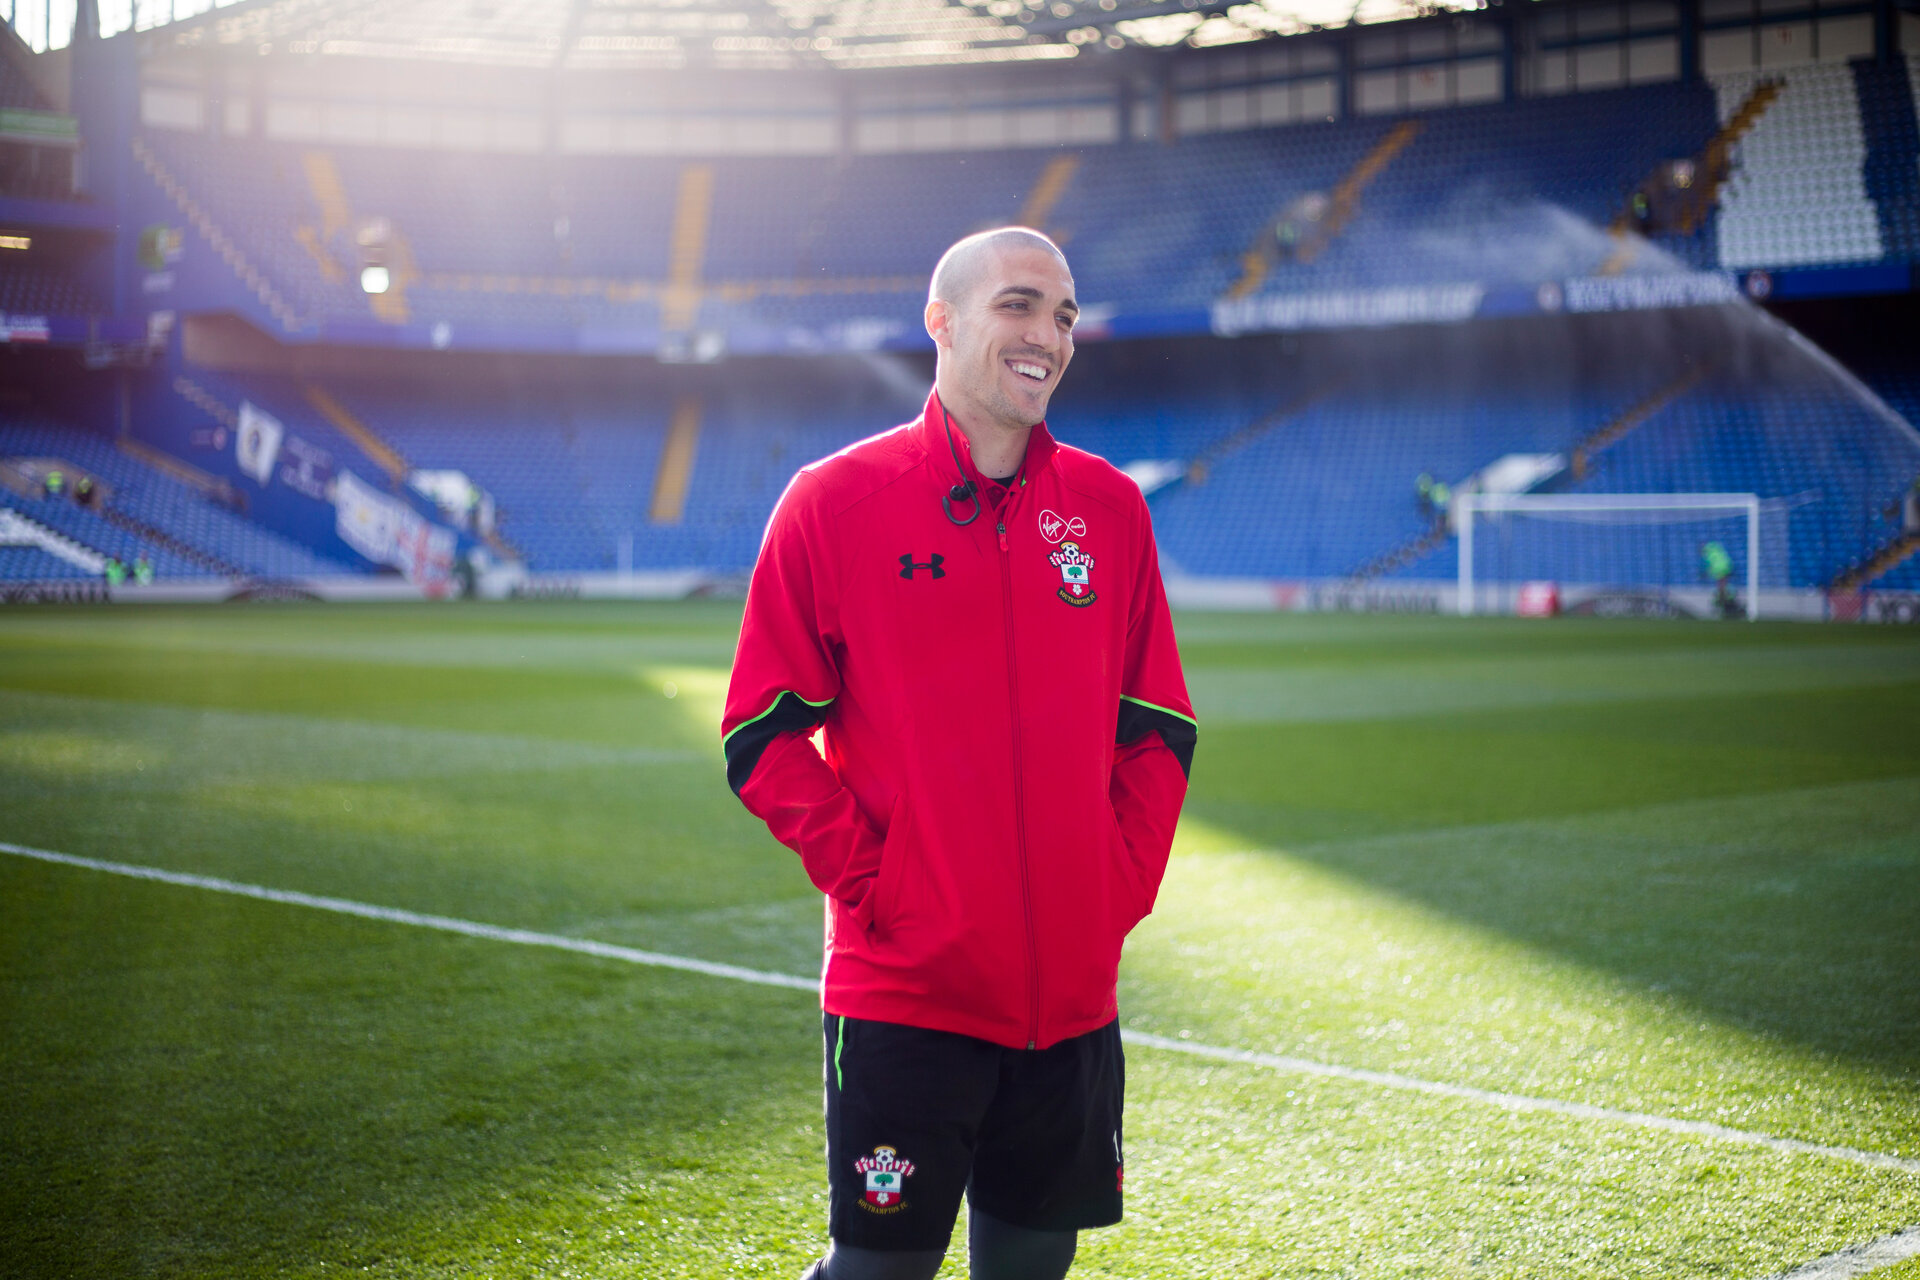 oriol romeu during the Premier League match between Chelsea and Southampton at Stamford Bridge, London. Photo by Naomi Baker/SFC/Digital South.